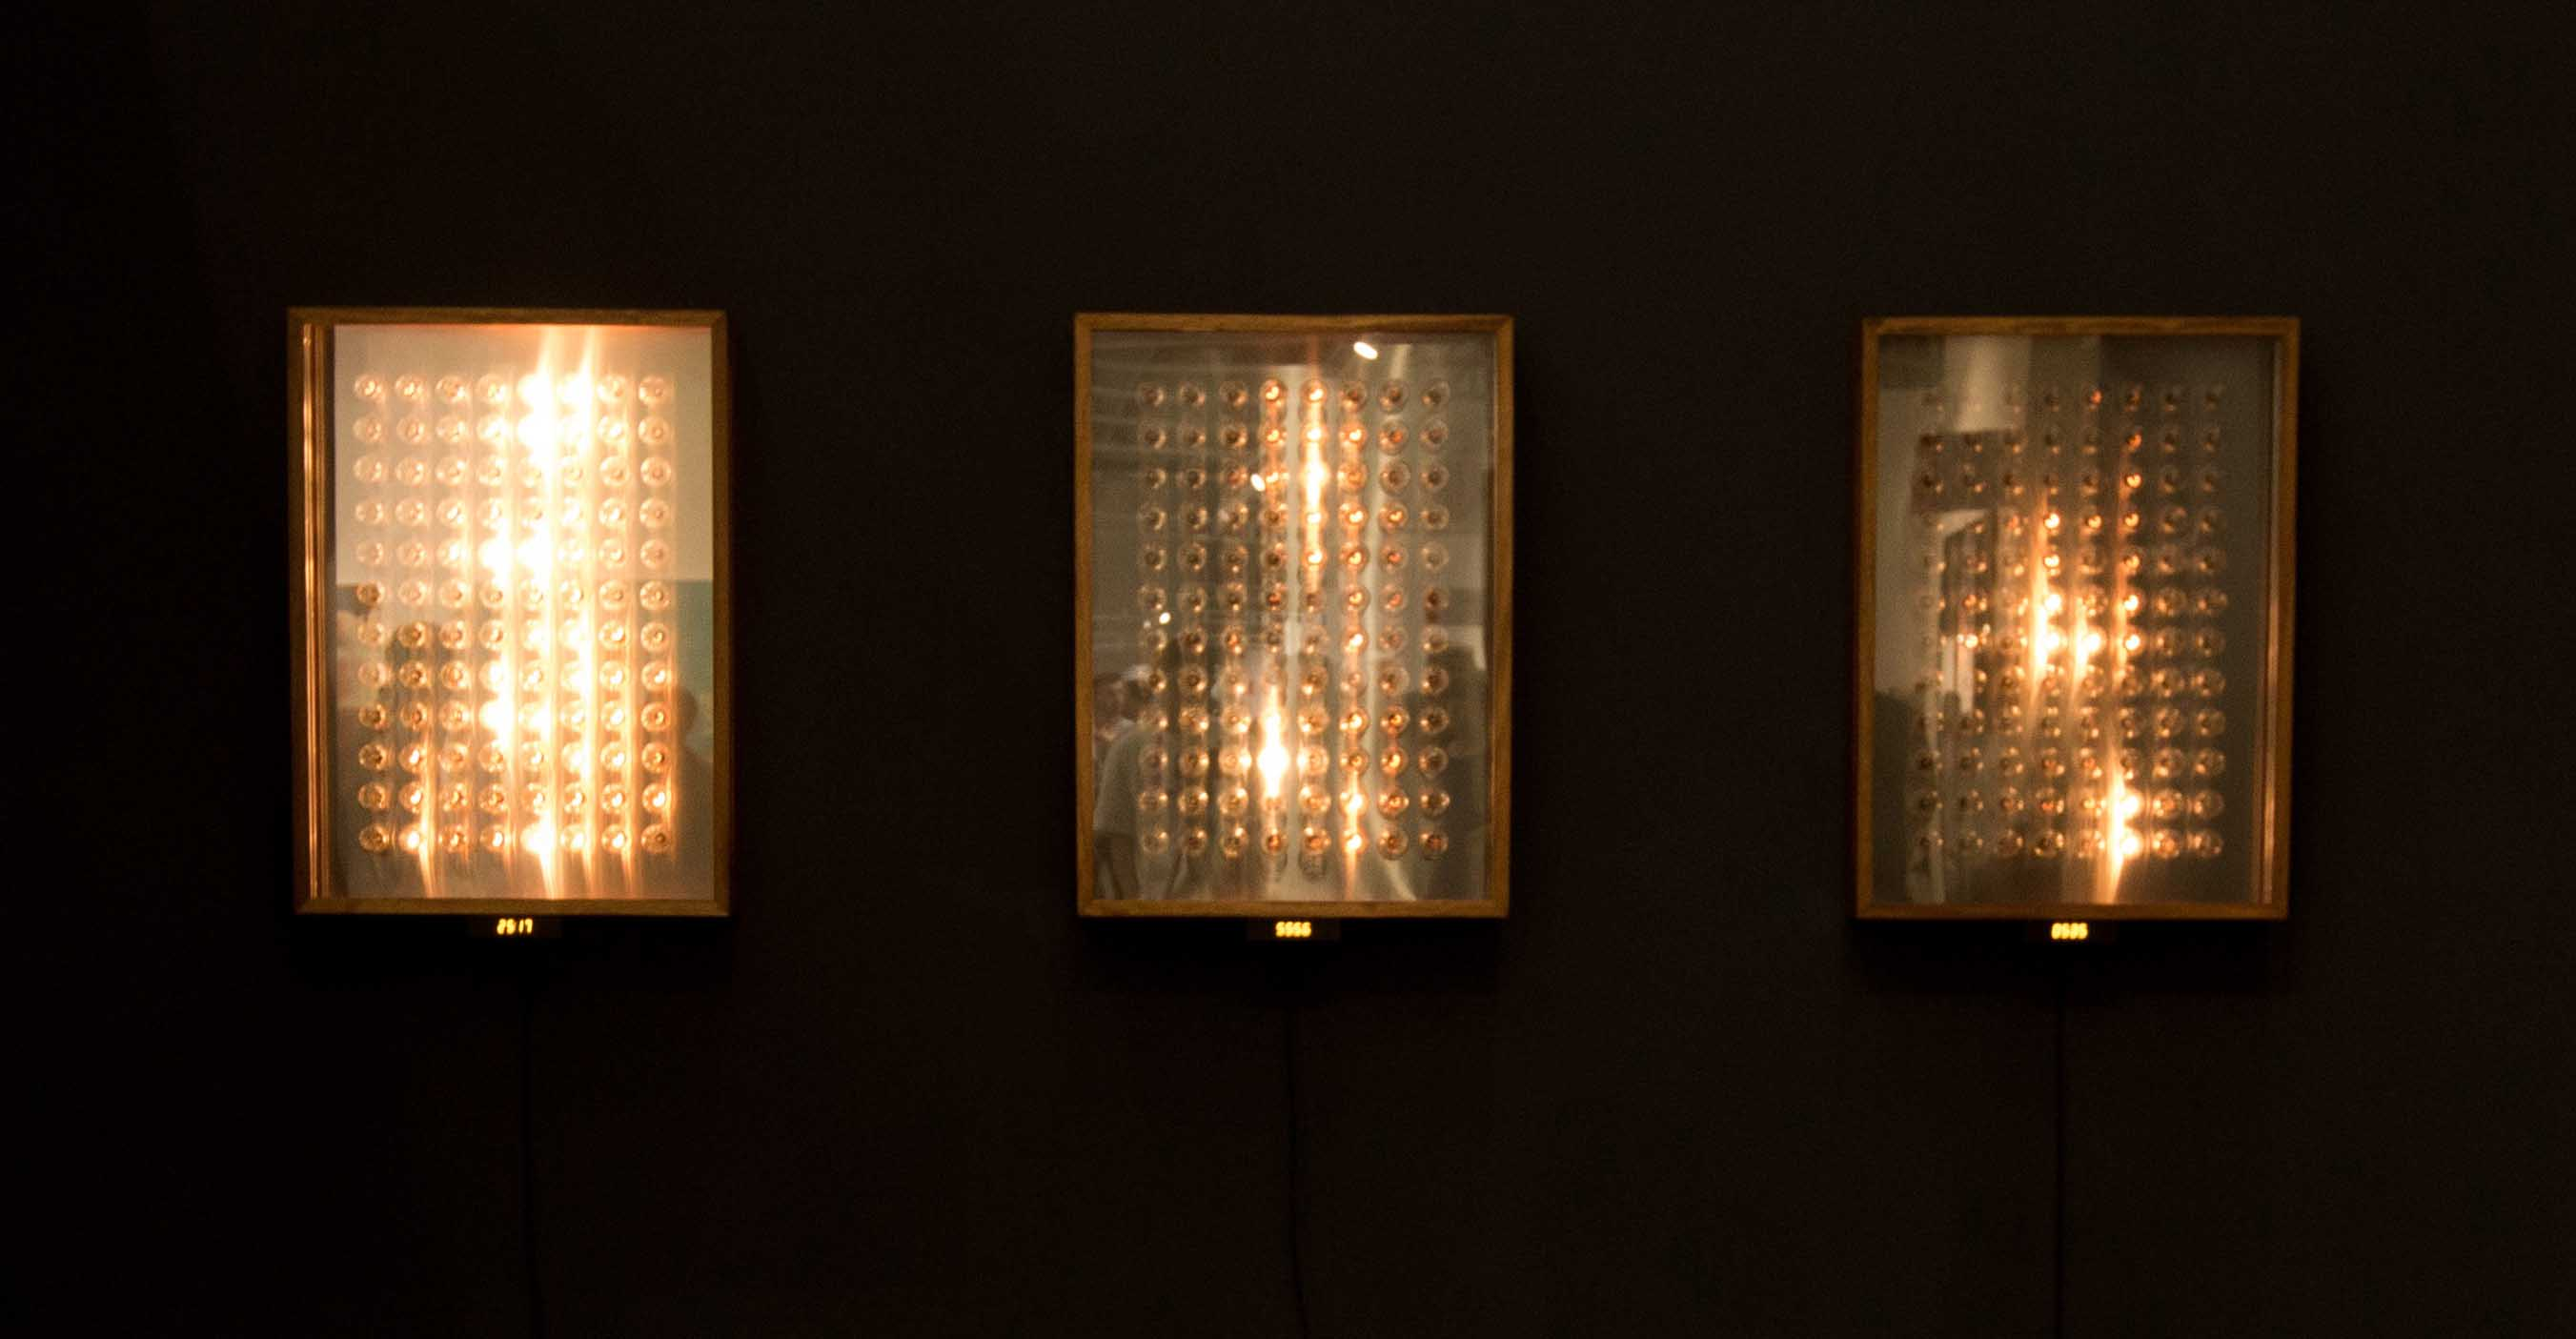 Kyu Sang Lee & Martin Wilson The Sound of Light 2019 Mixed media installation 88.5 x 64.5 x 13 cm(each)